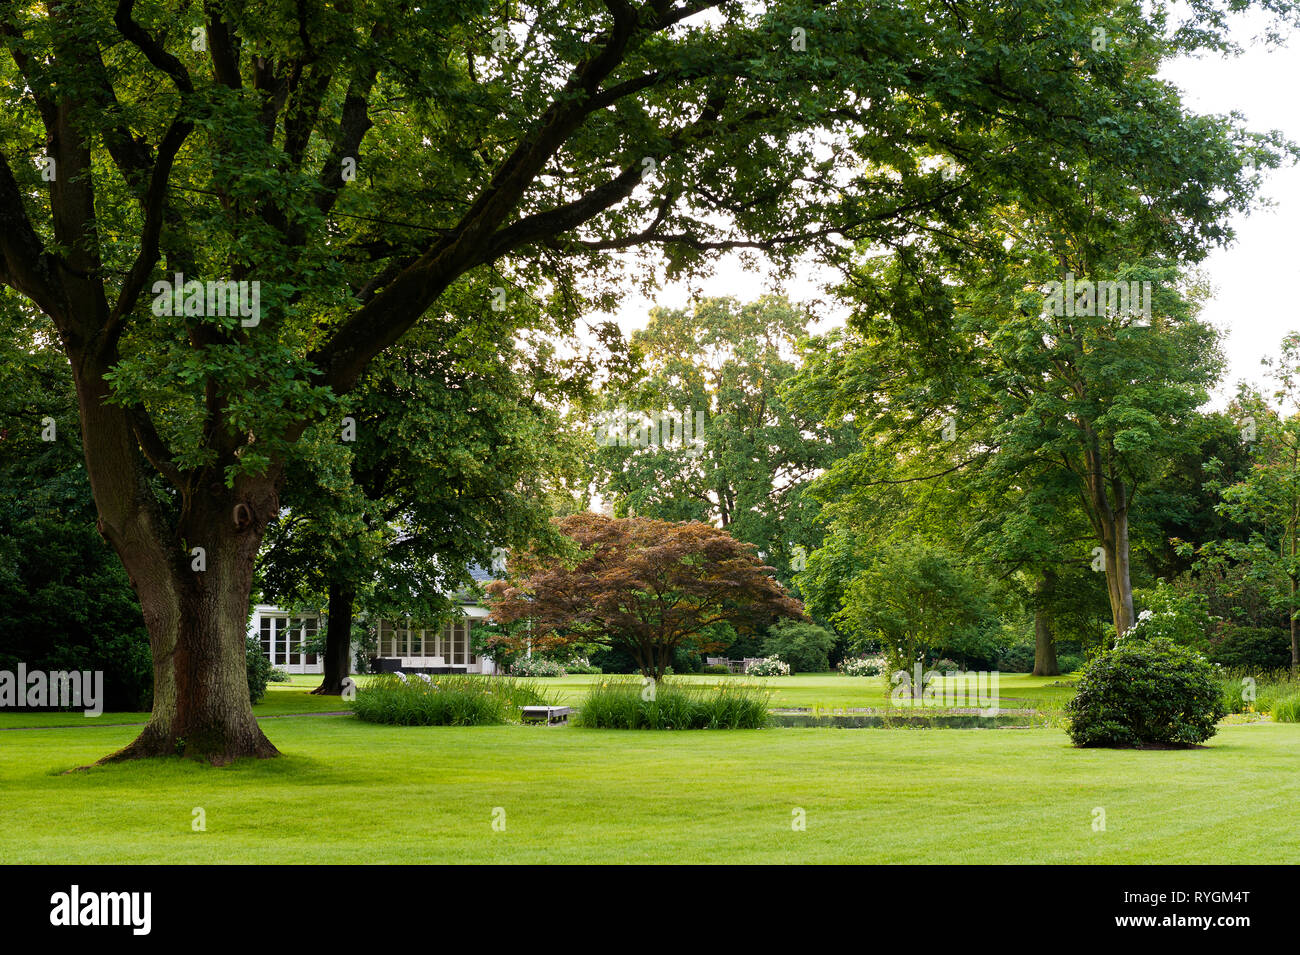 Lawn and trees - Stock Image